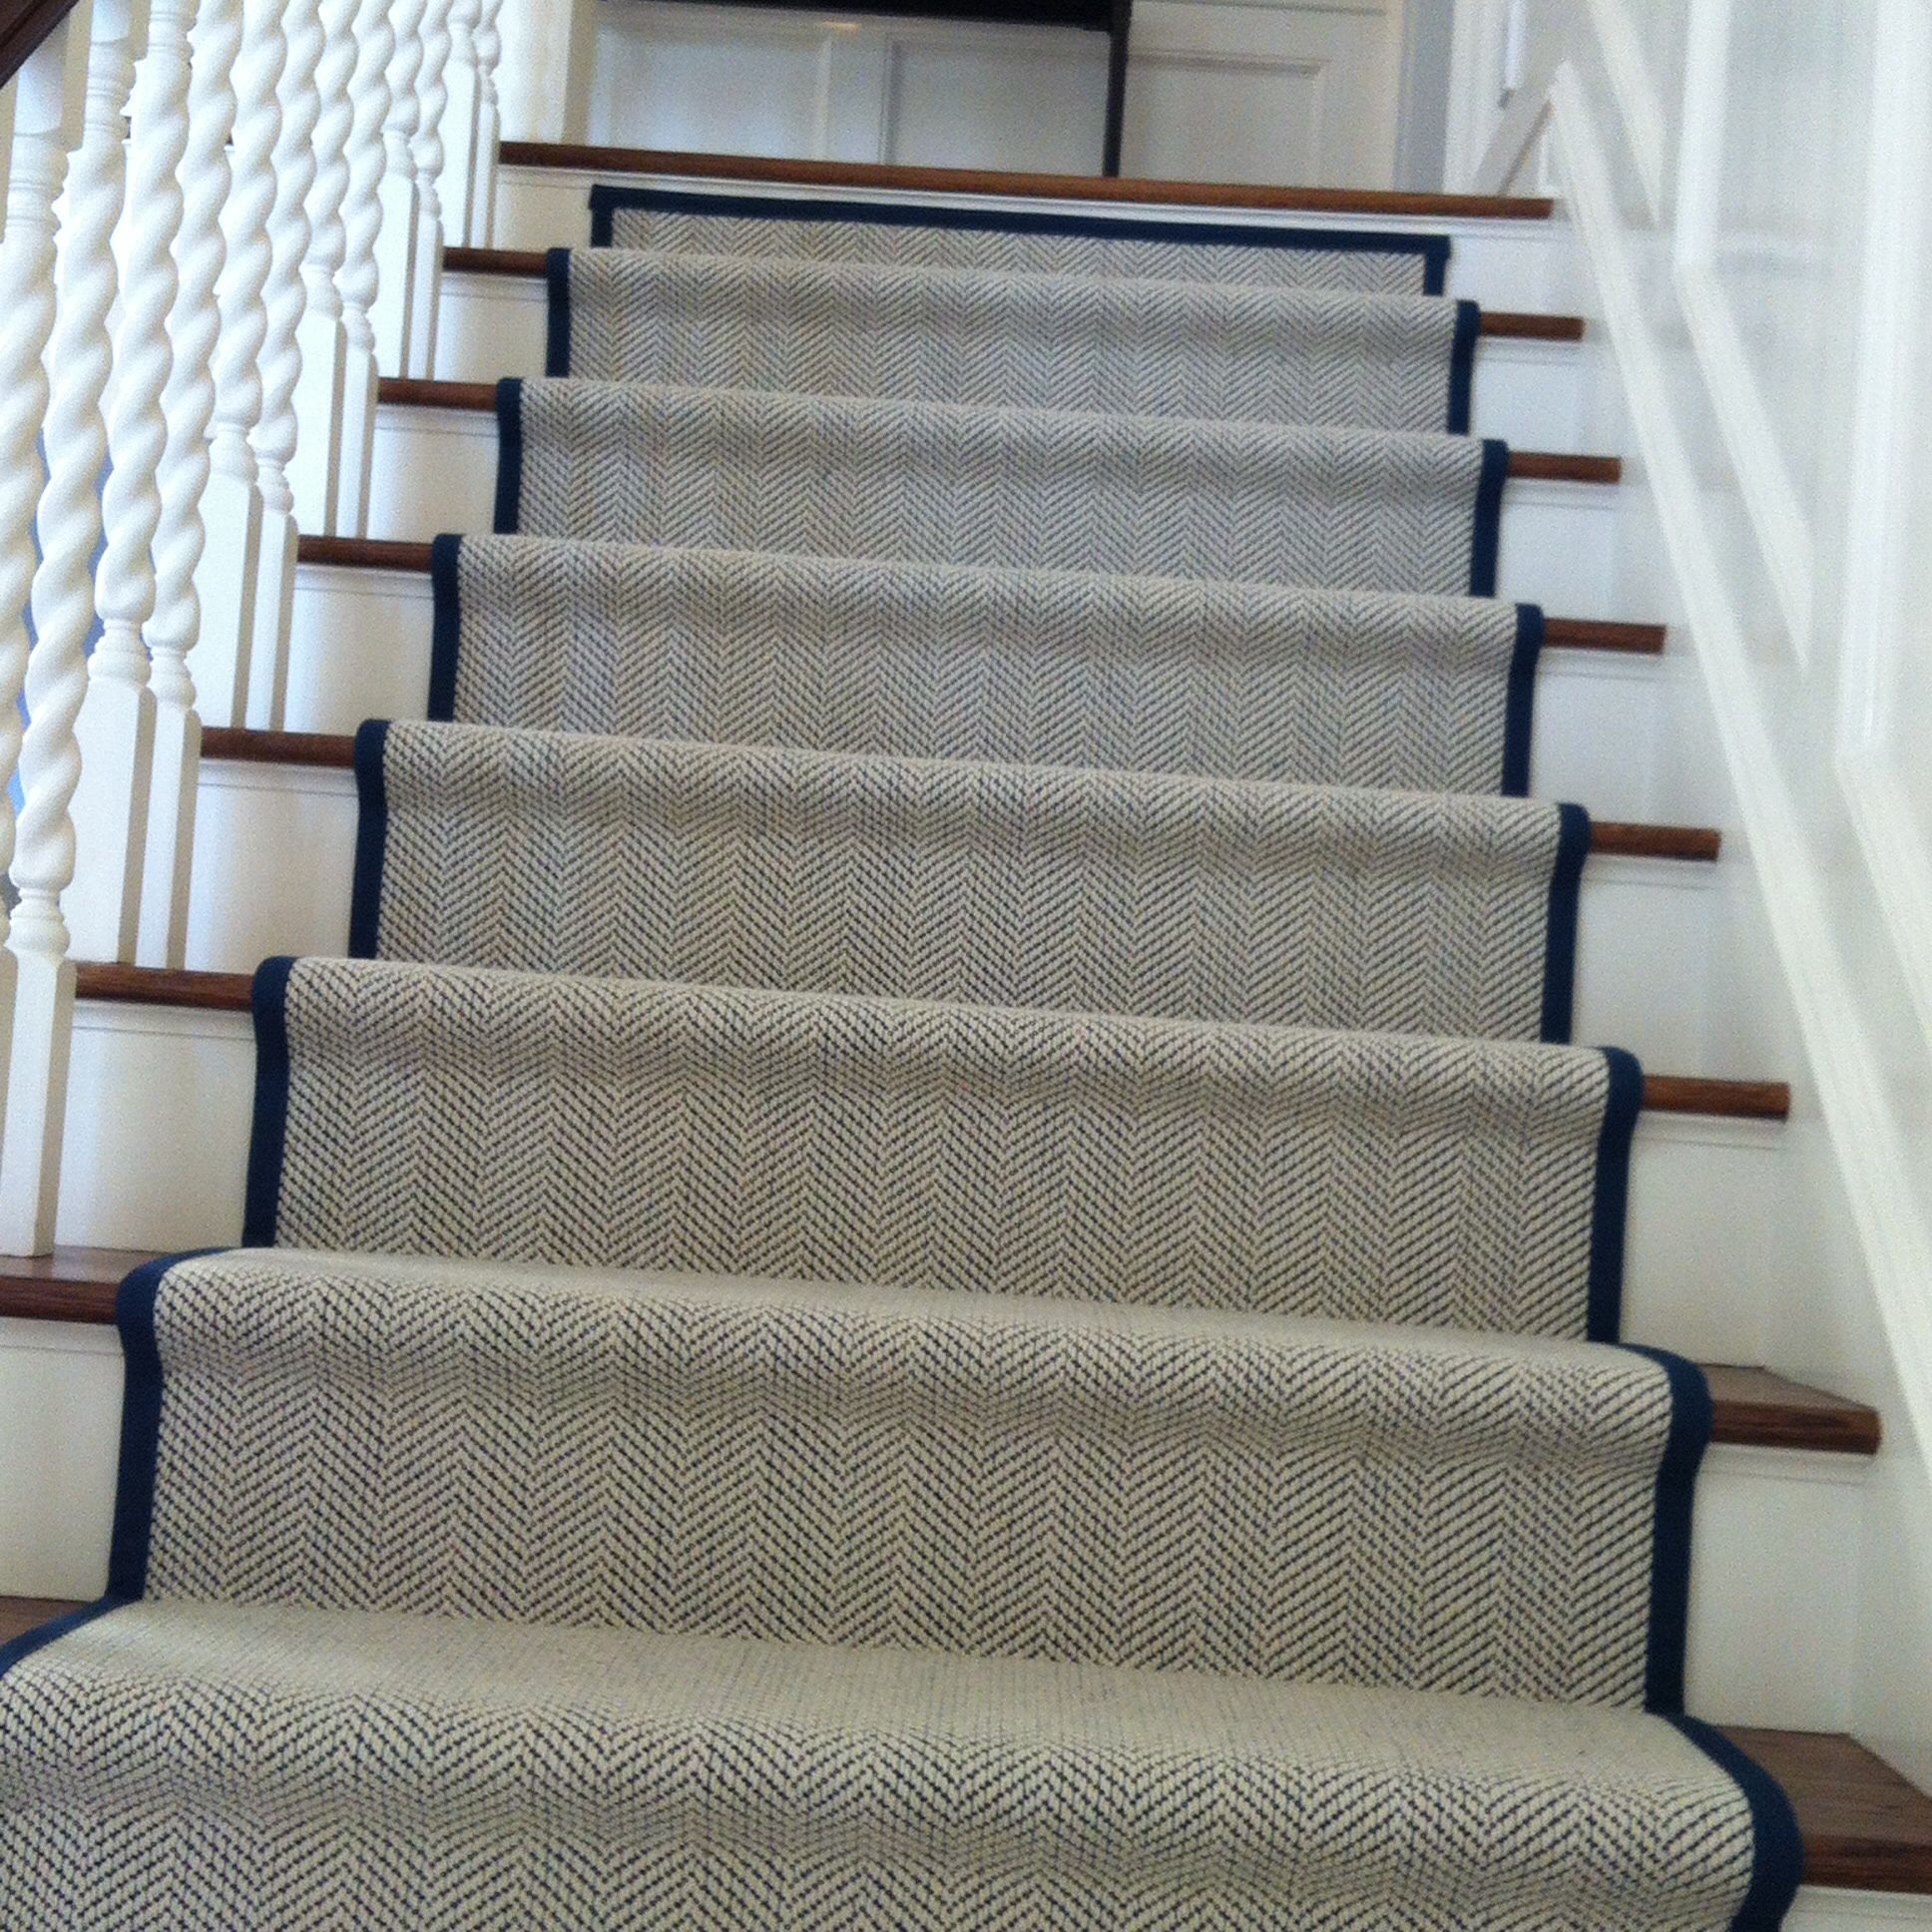 My New Staircase Runner Herringbone With A Marine Blue Binding Stair Runner Carpet Staircase Runner Carpet Stairs